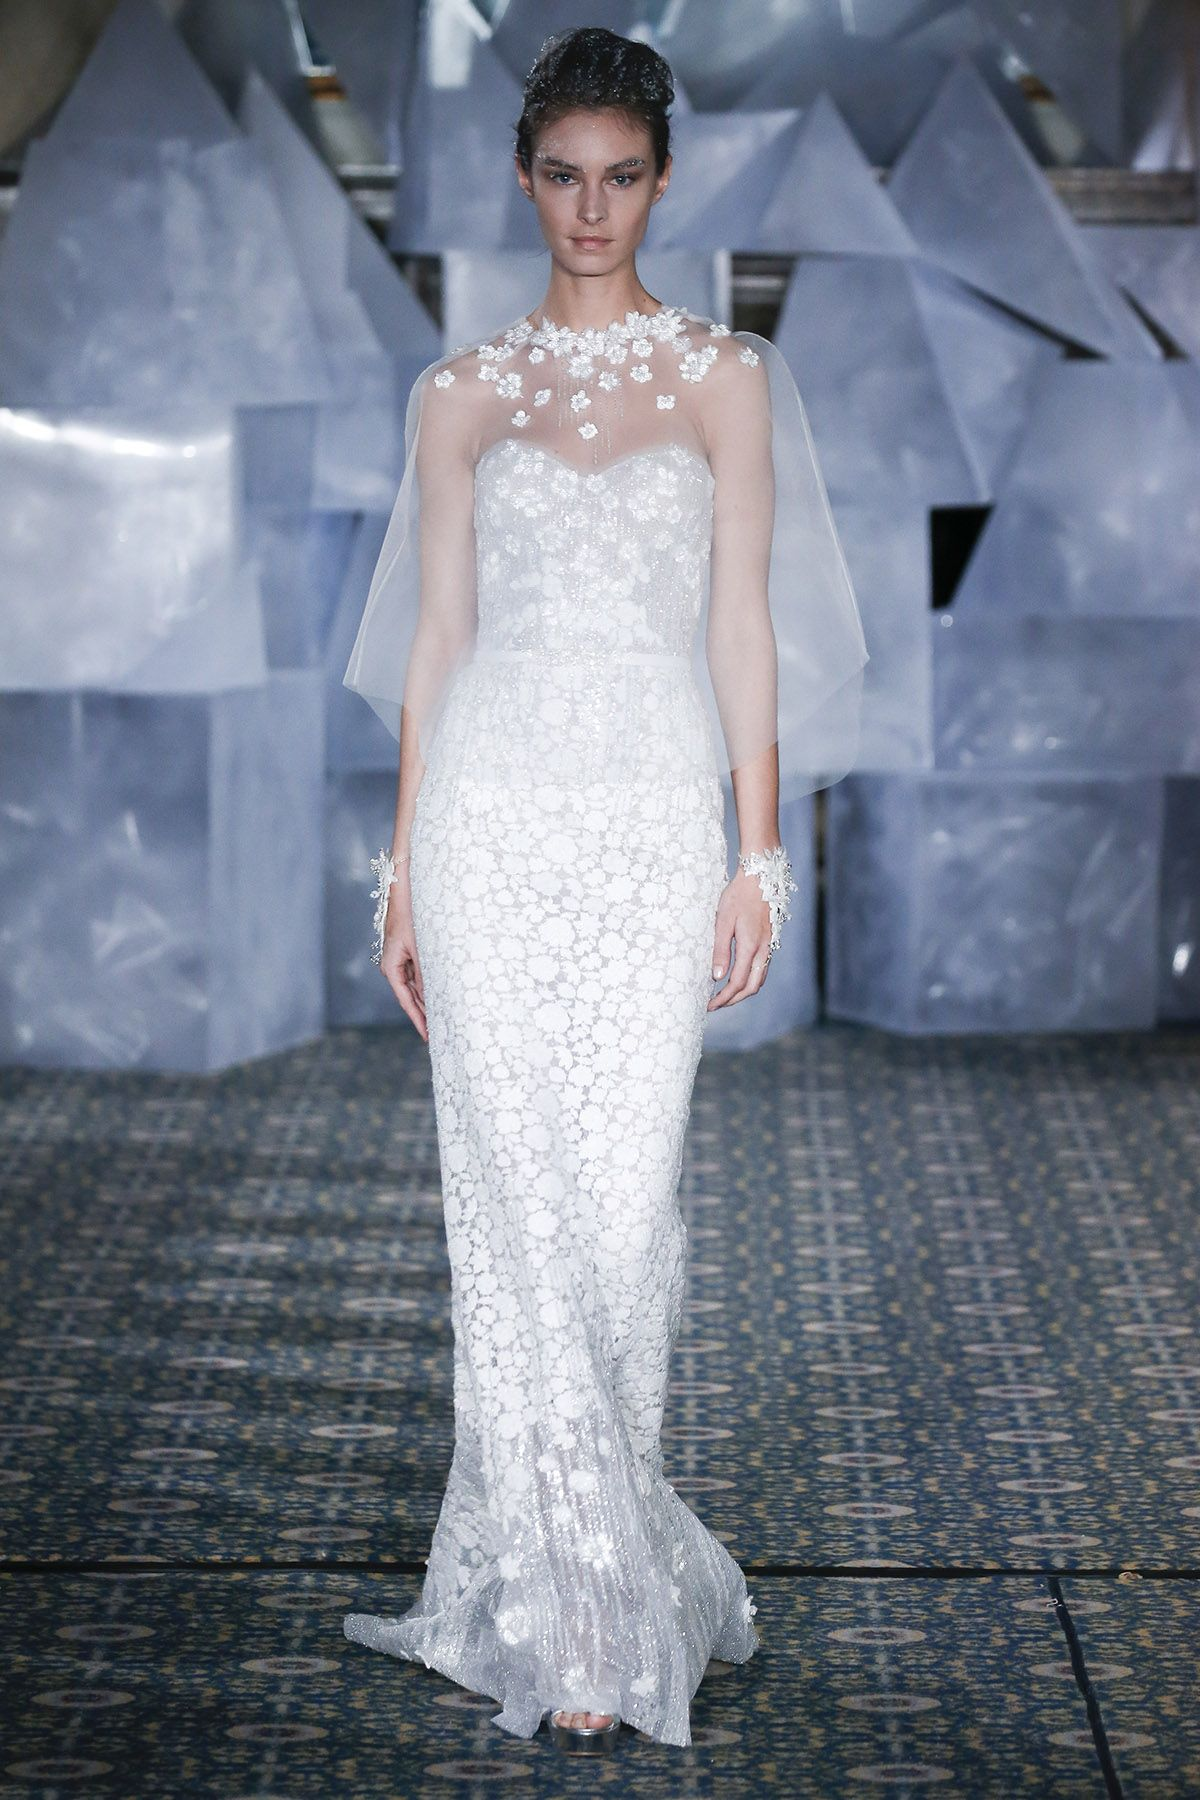 0eefbae7bc42 The Best Spring Bridal Trends of 2019 - Spring Bridal Fashion Week Photos